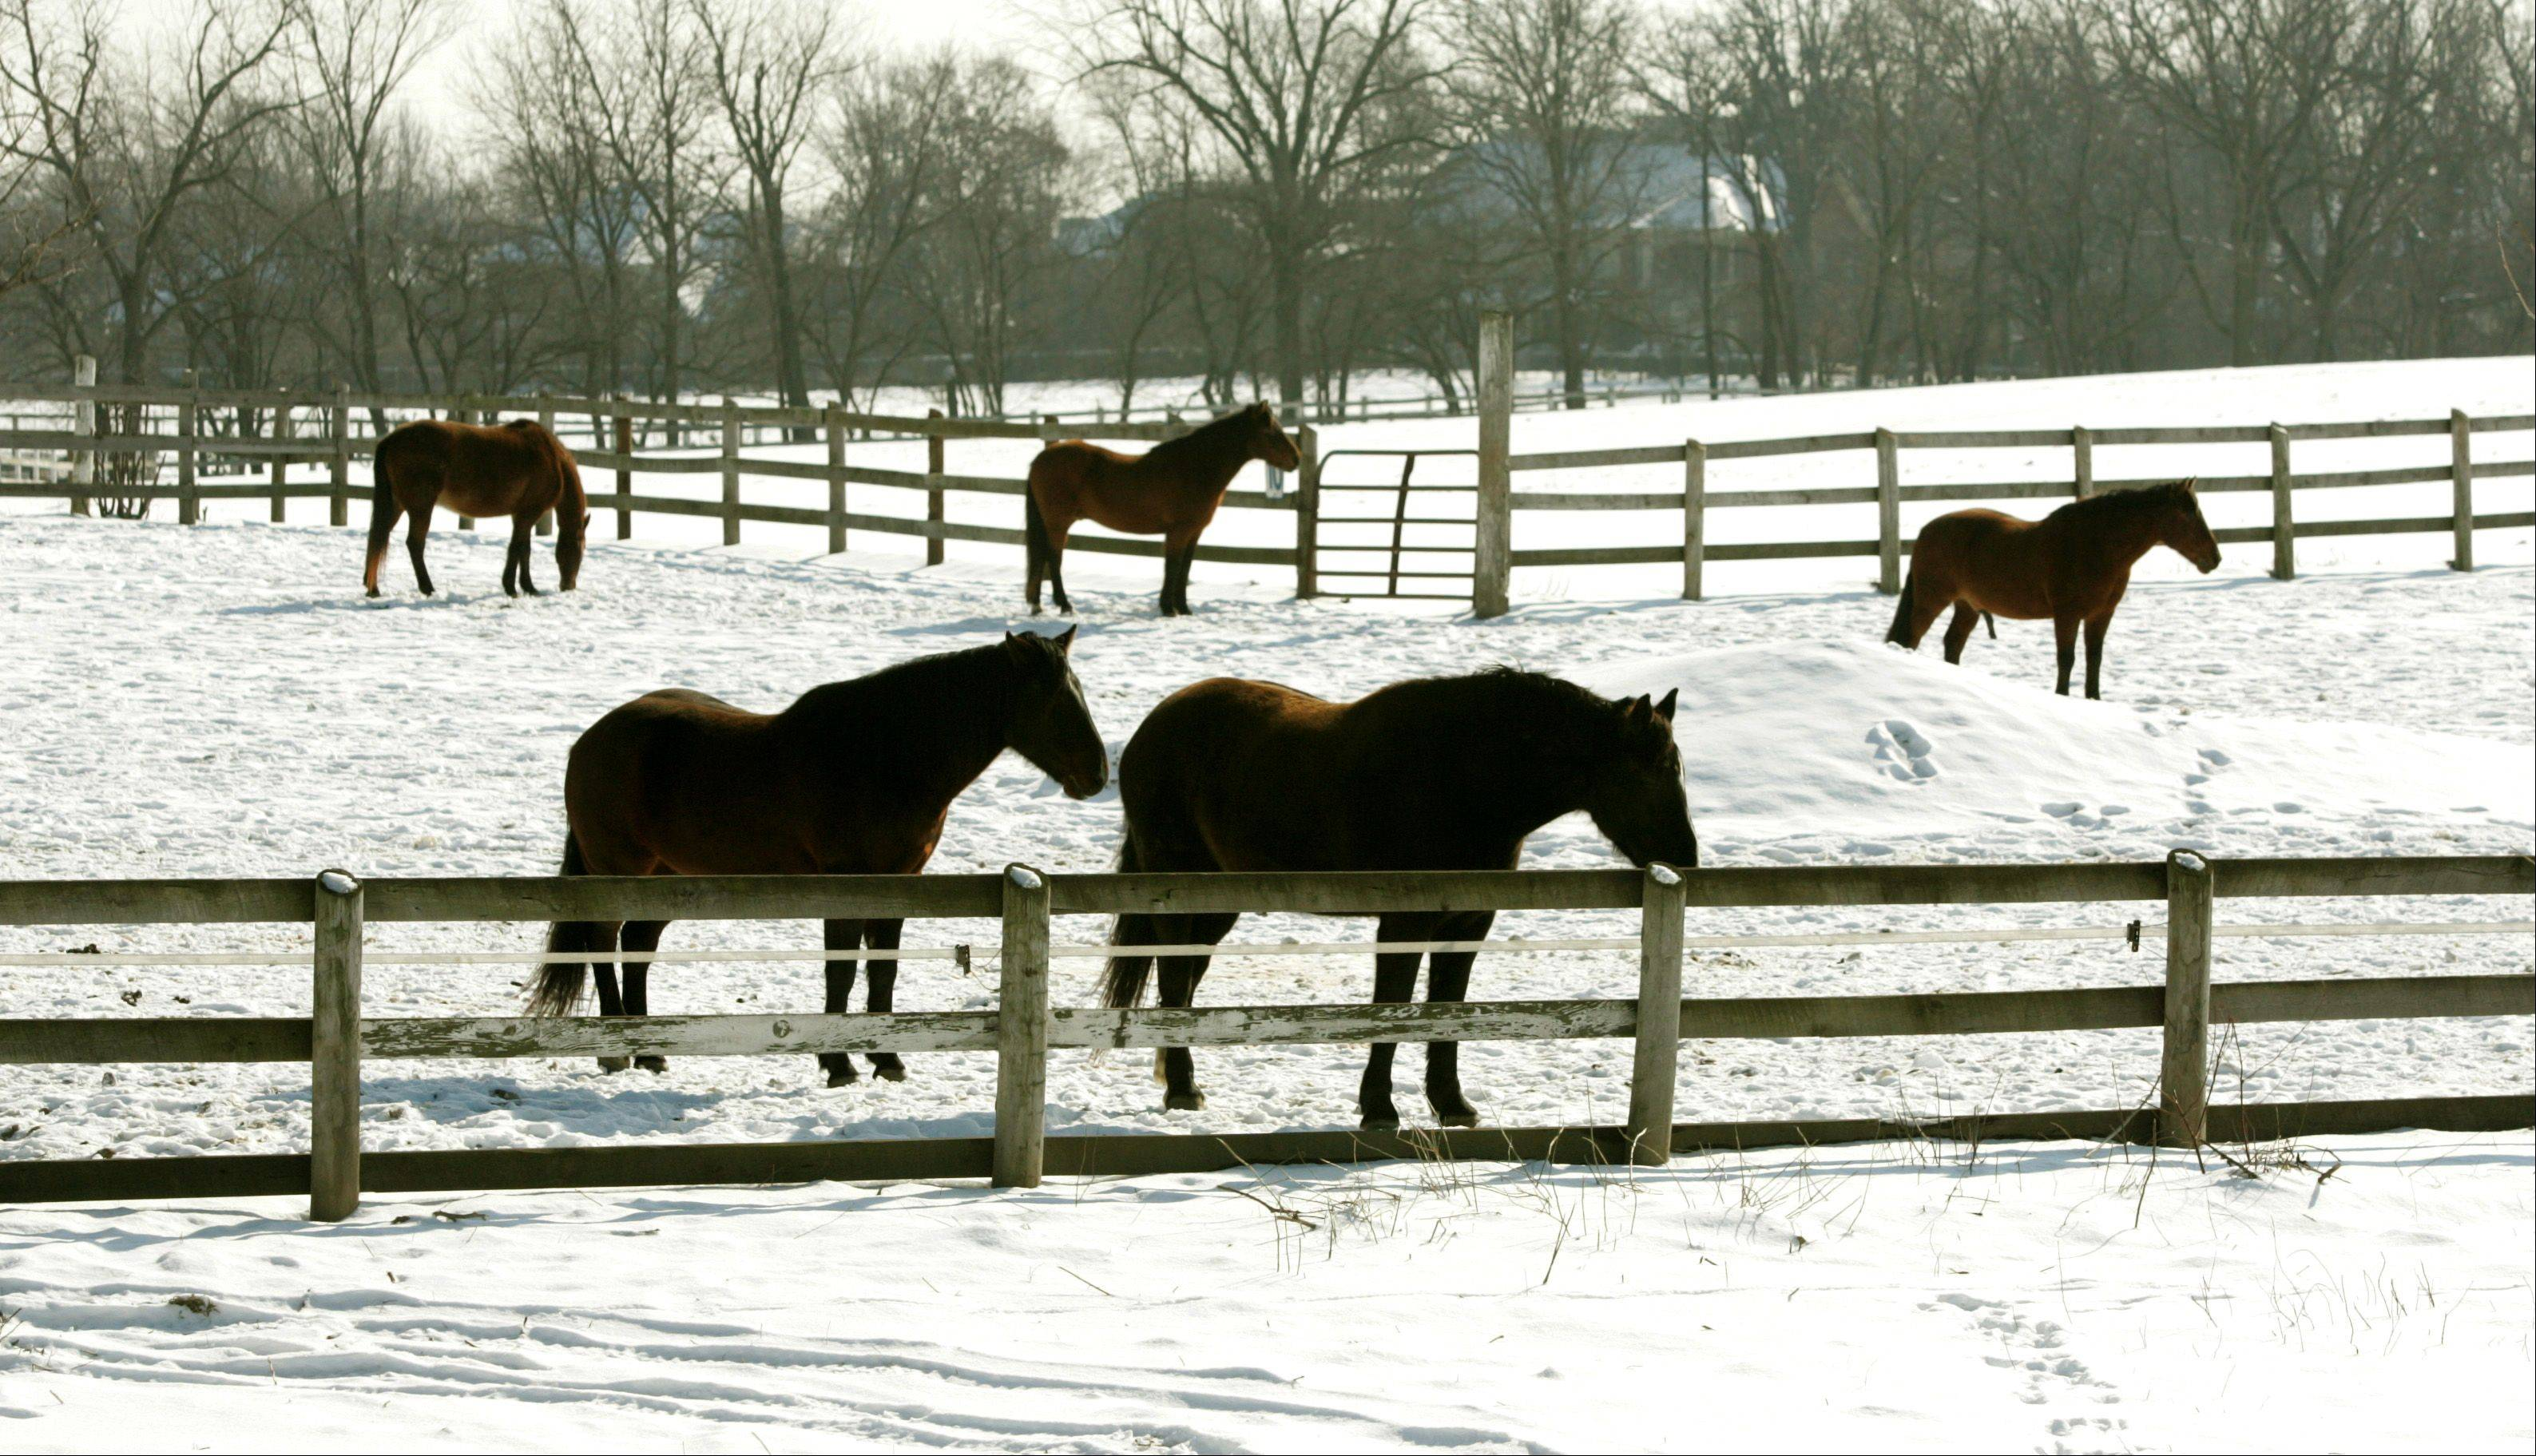 Forest preserve may revise Danada horse adoption policy